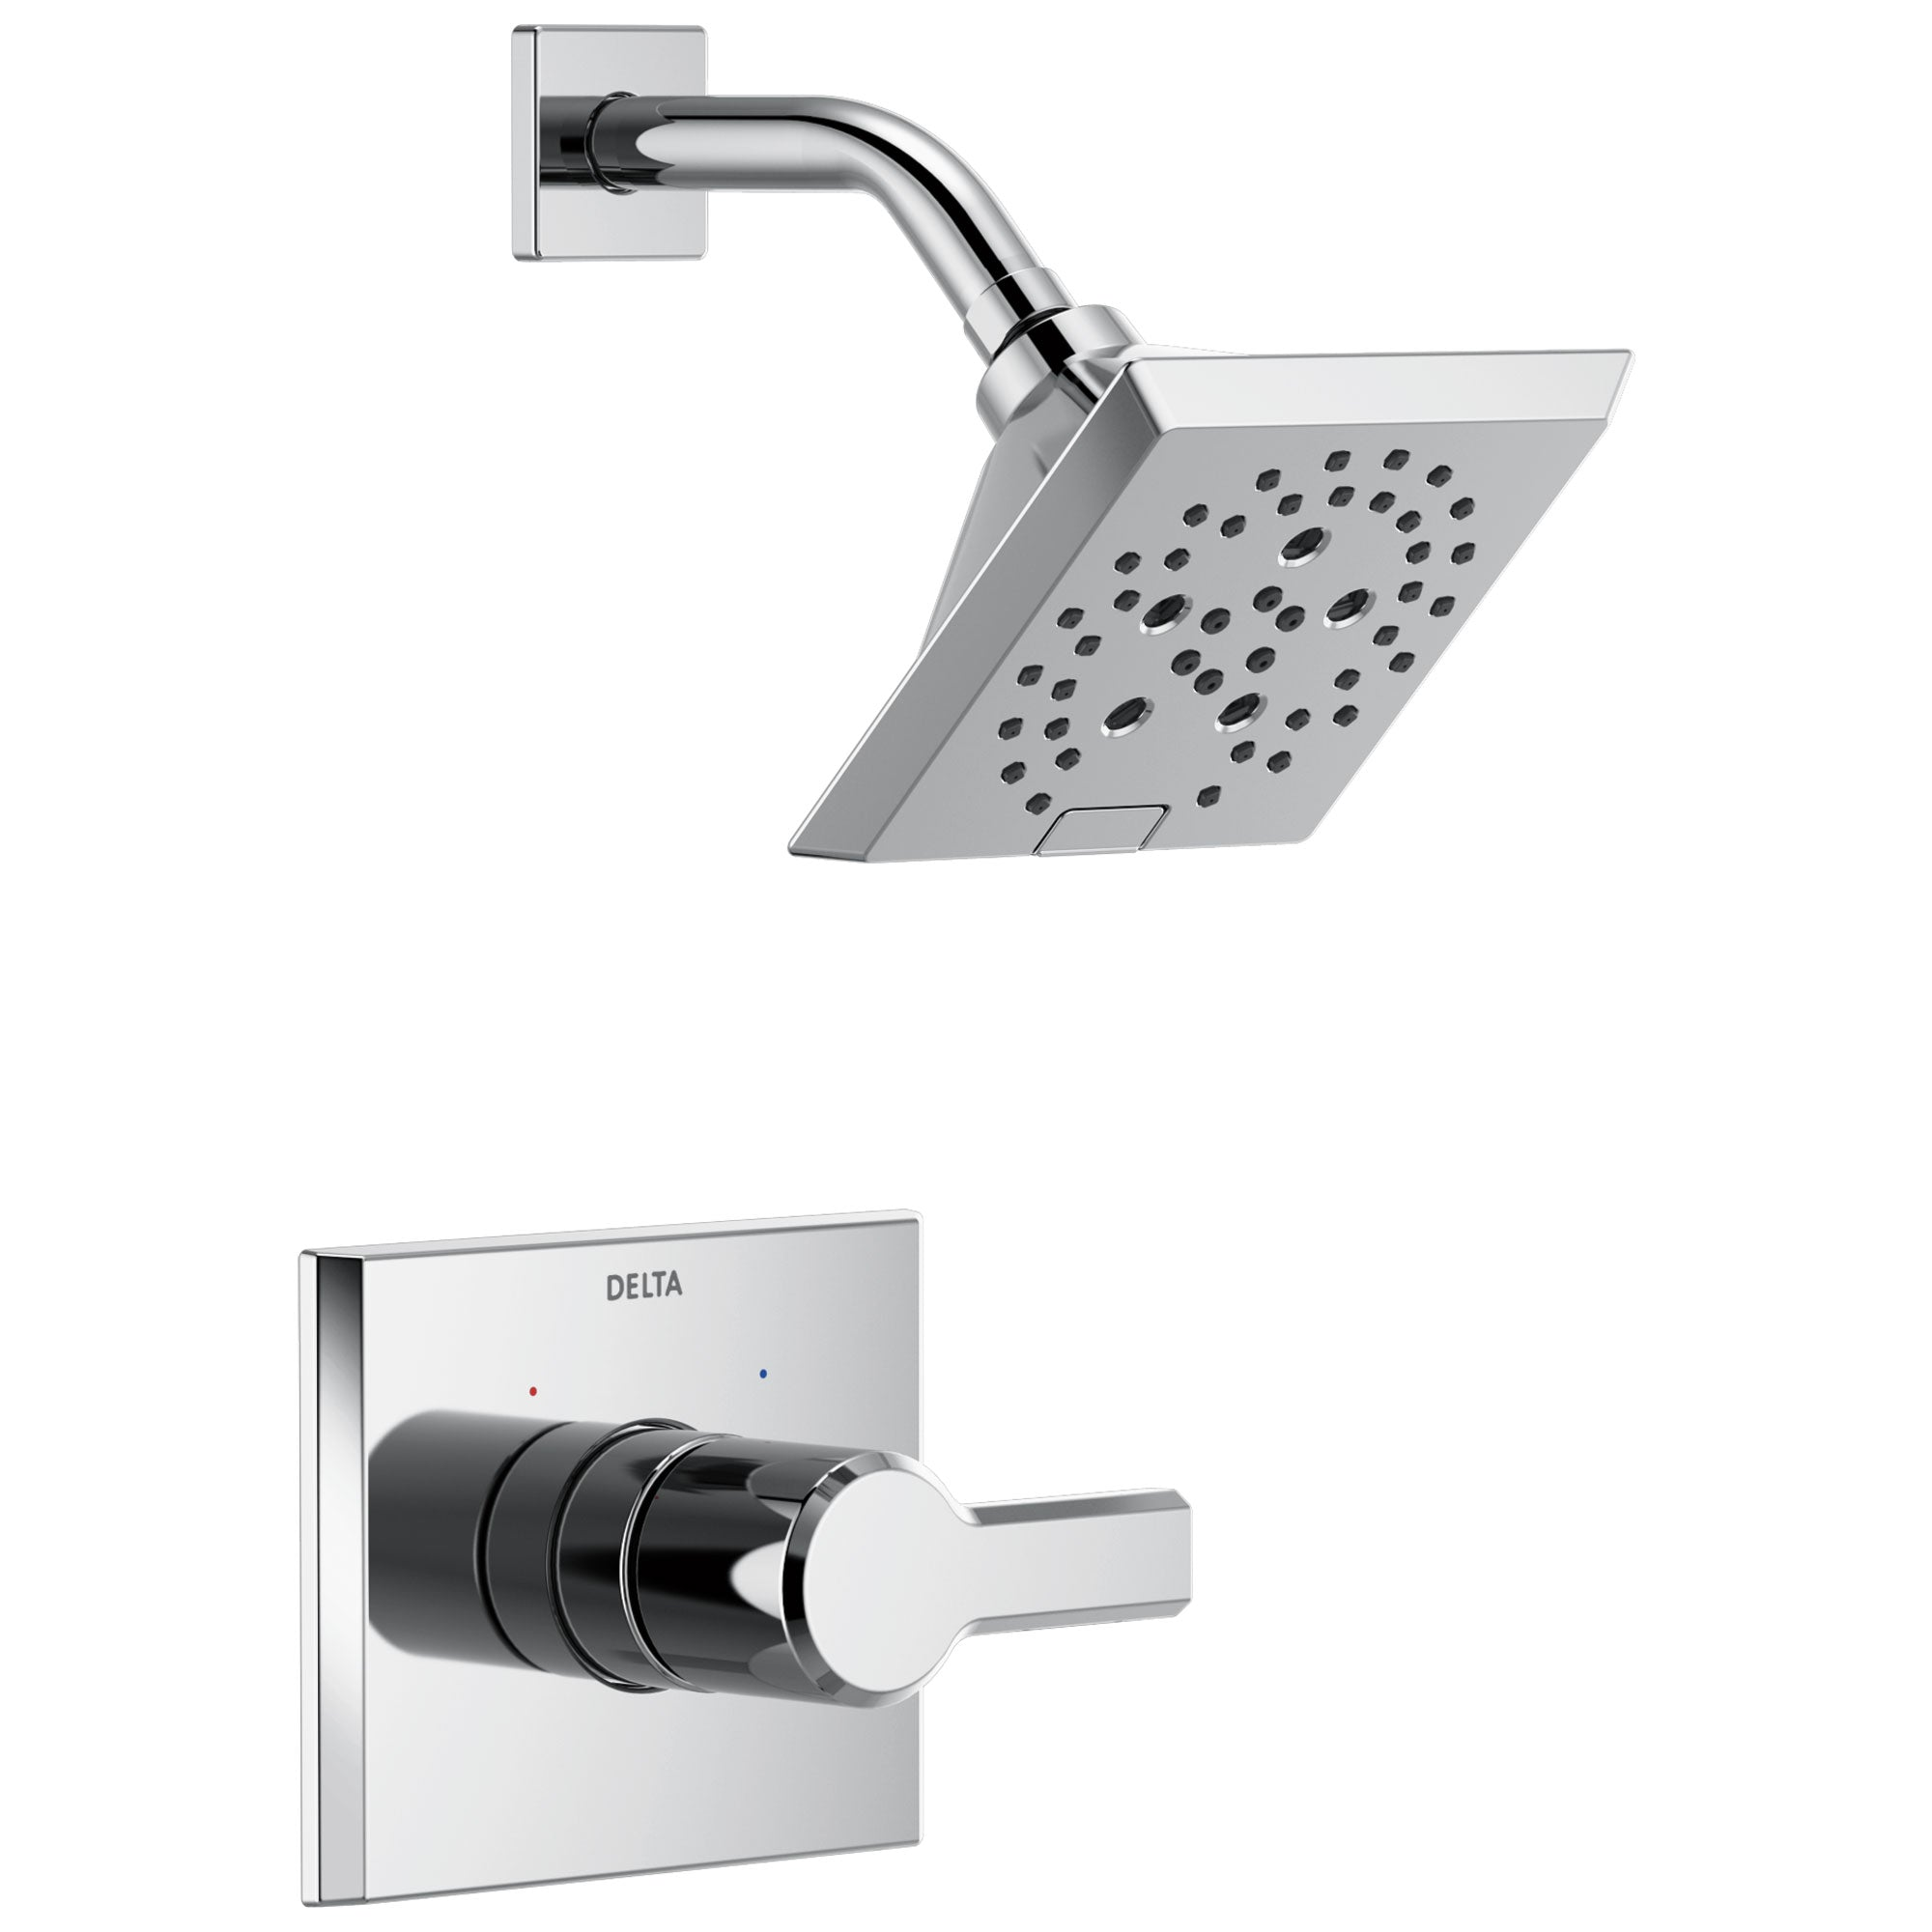 Delta Pivotal Chrome Finish Monitor 14 Series Shower only Faucet Includes Single Lever Handle, Cartridge, and Valve with Stops D3482V